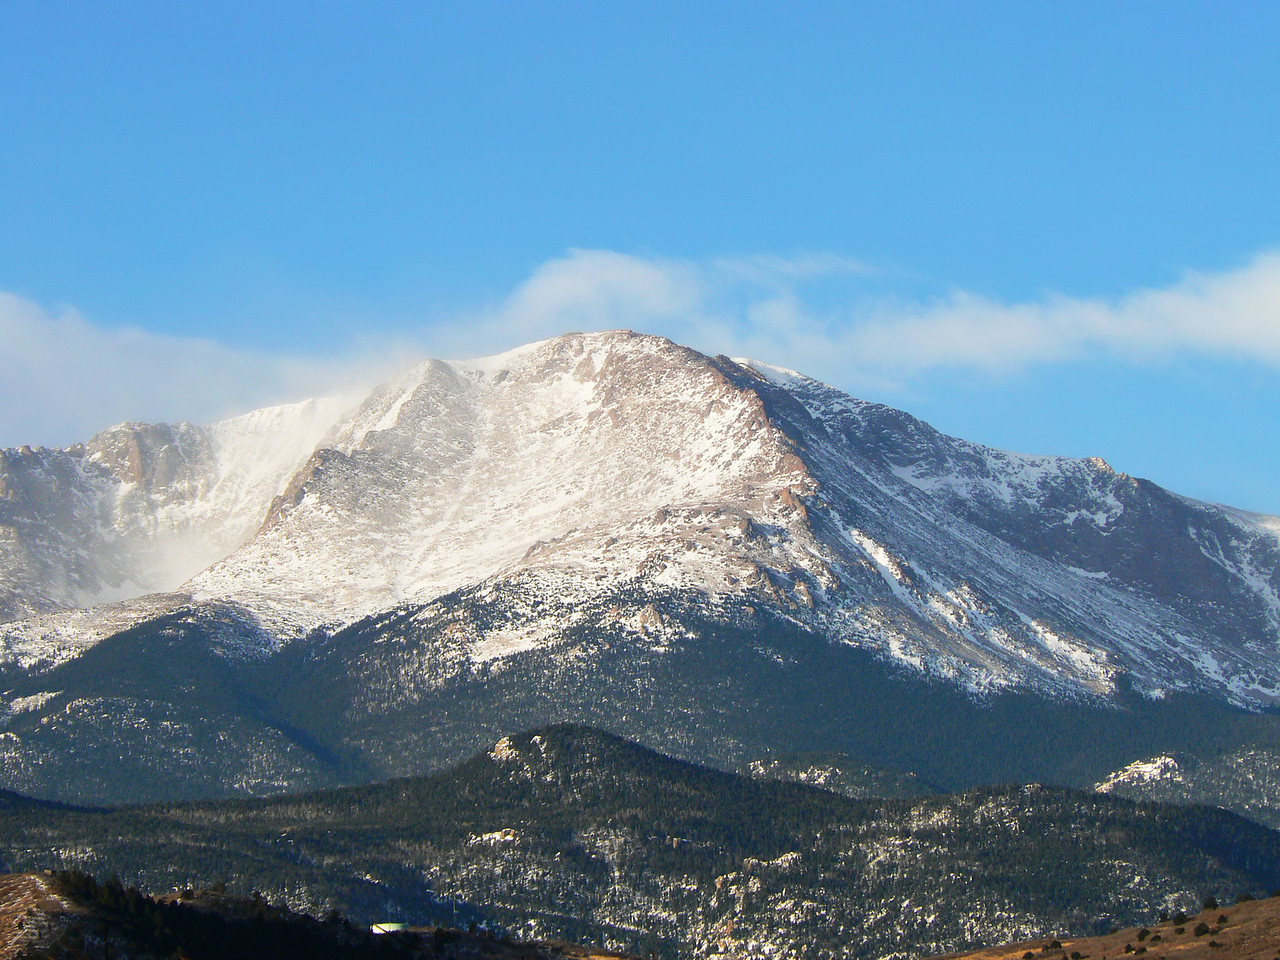 Pikes Peak seen from near Garden of the Gods Road at Centennial Rd, Colorodo Springs